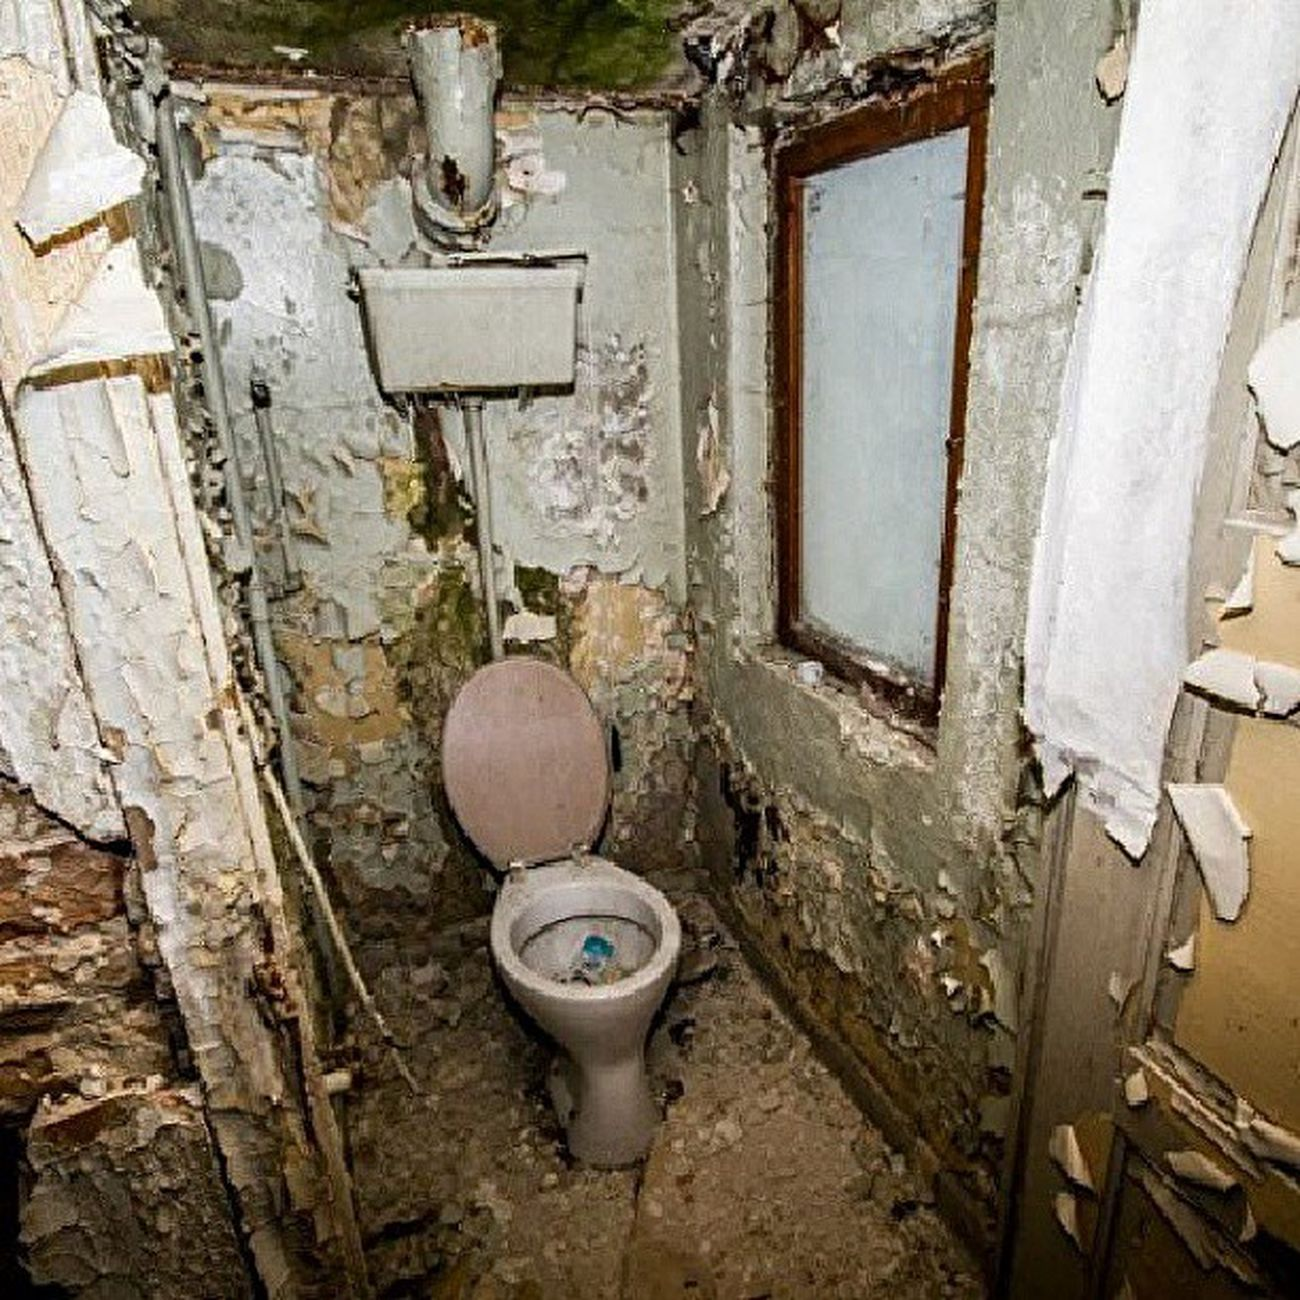 Abandoned Urbanexplotation Lost Lostplaces old house ruin ruins instagrammers instahub ahlbeck germany mecklenburg vorpommern stones toilet